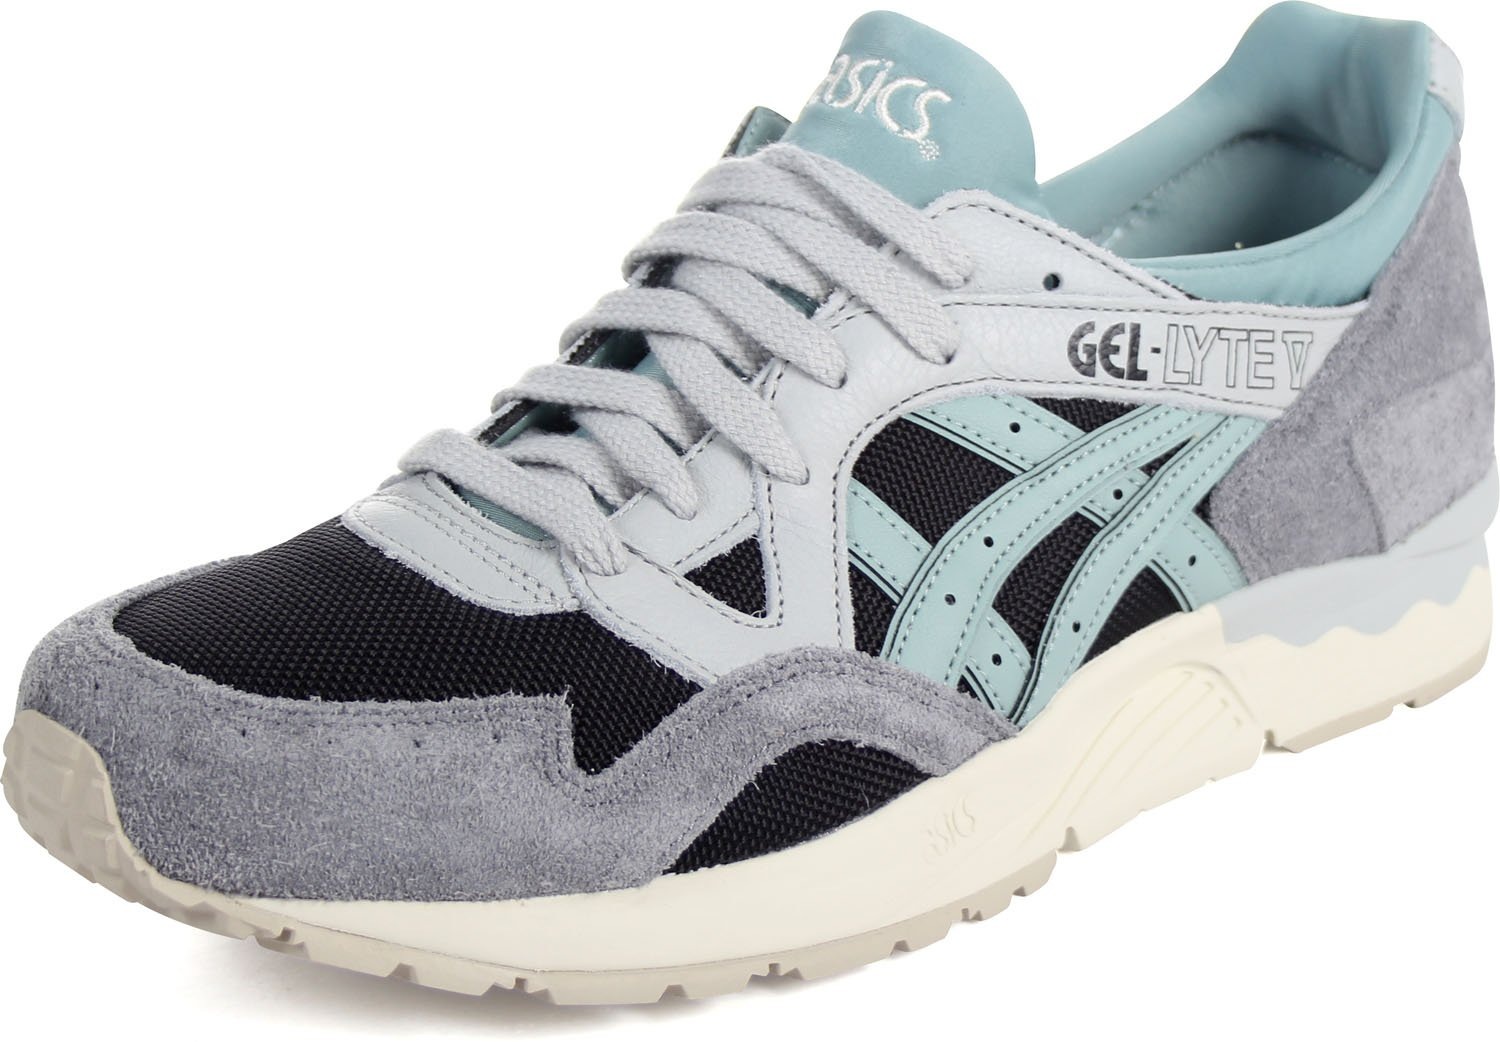 los angeles 4150d 60a38 Onitsuka Tiger by Asics Men's Gel-Lyte V Black/Blue Surf 9 D US